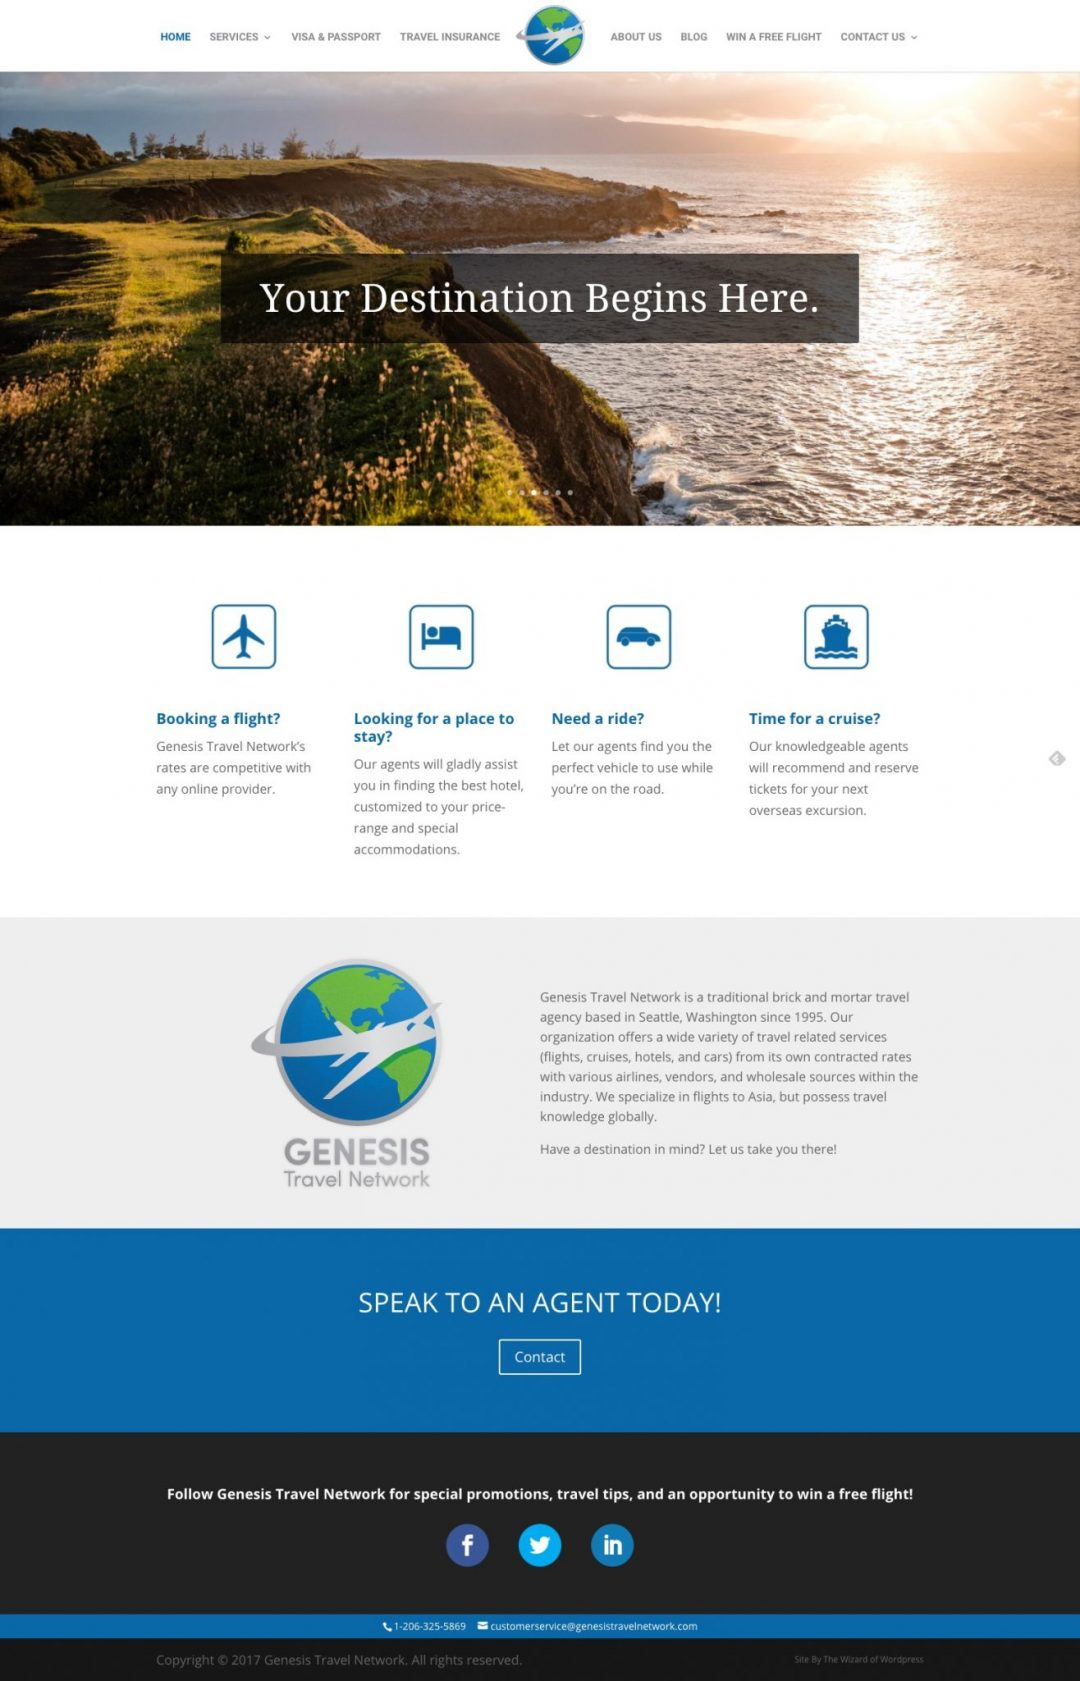 Genesis Travel Network